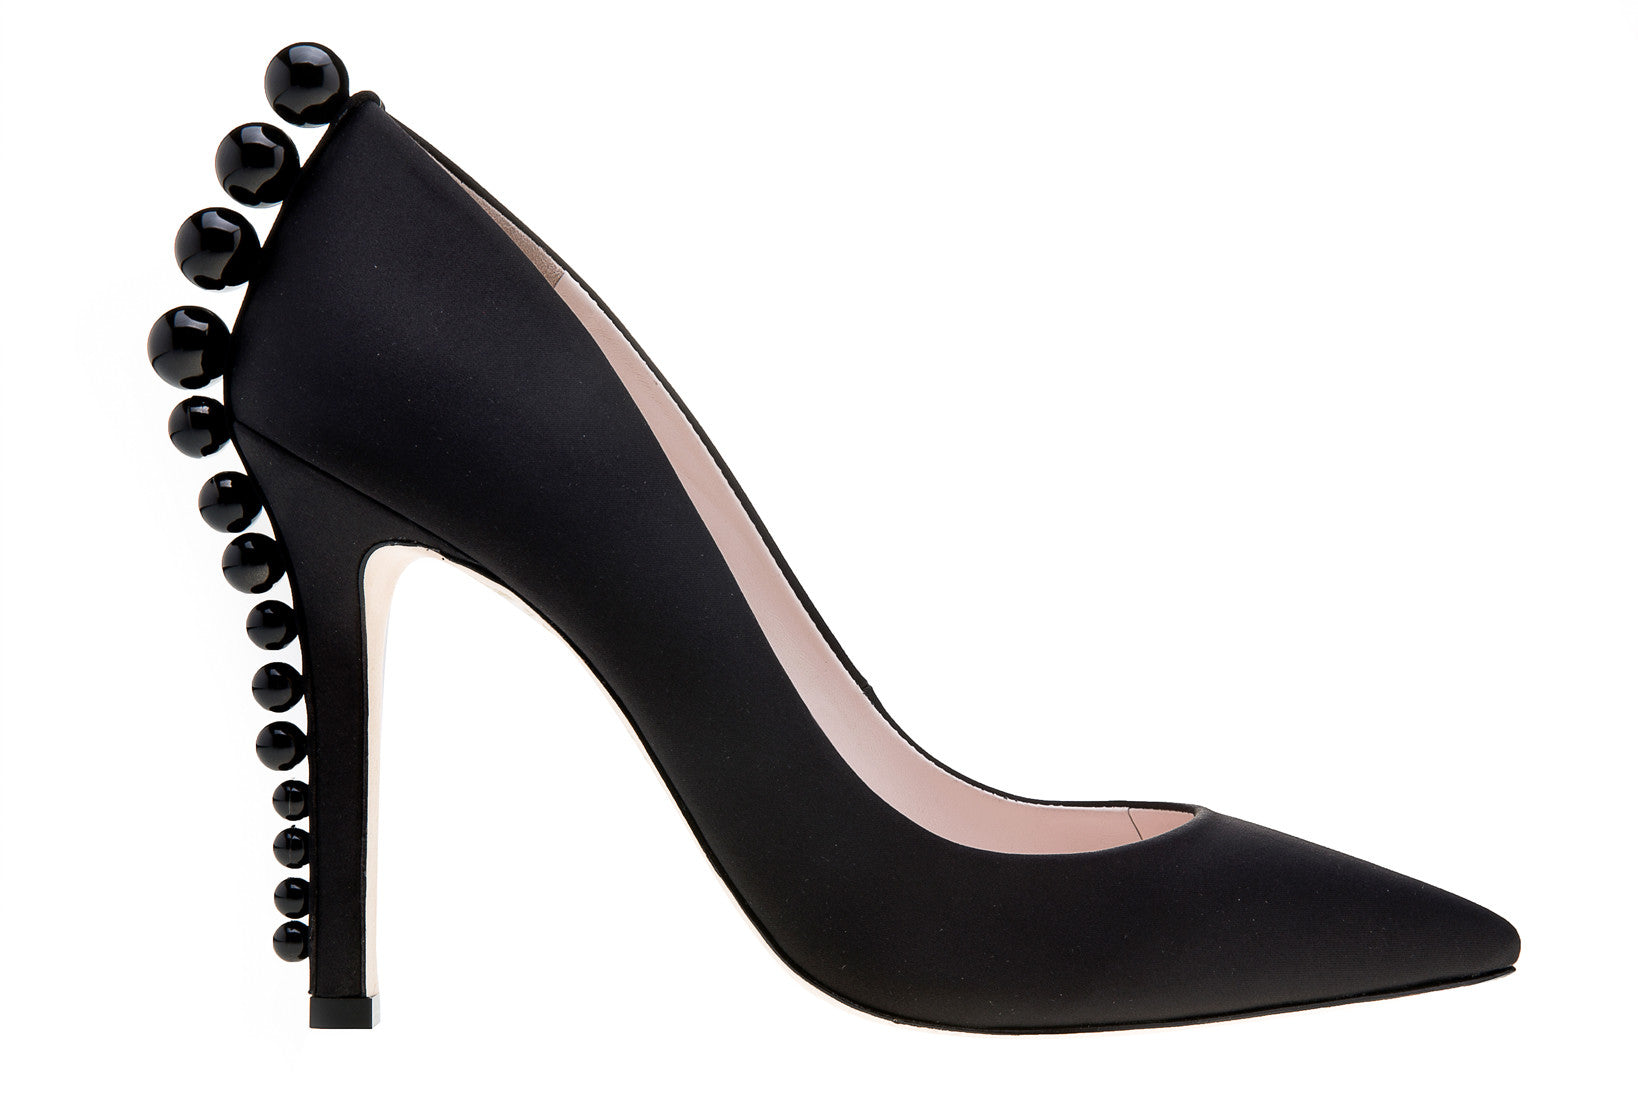 f4f05d4f9aa Iruoma - Black Suede Pump Shoes